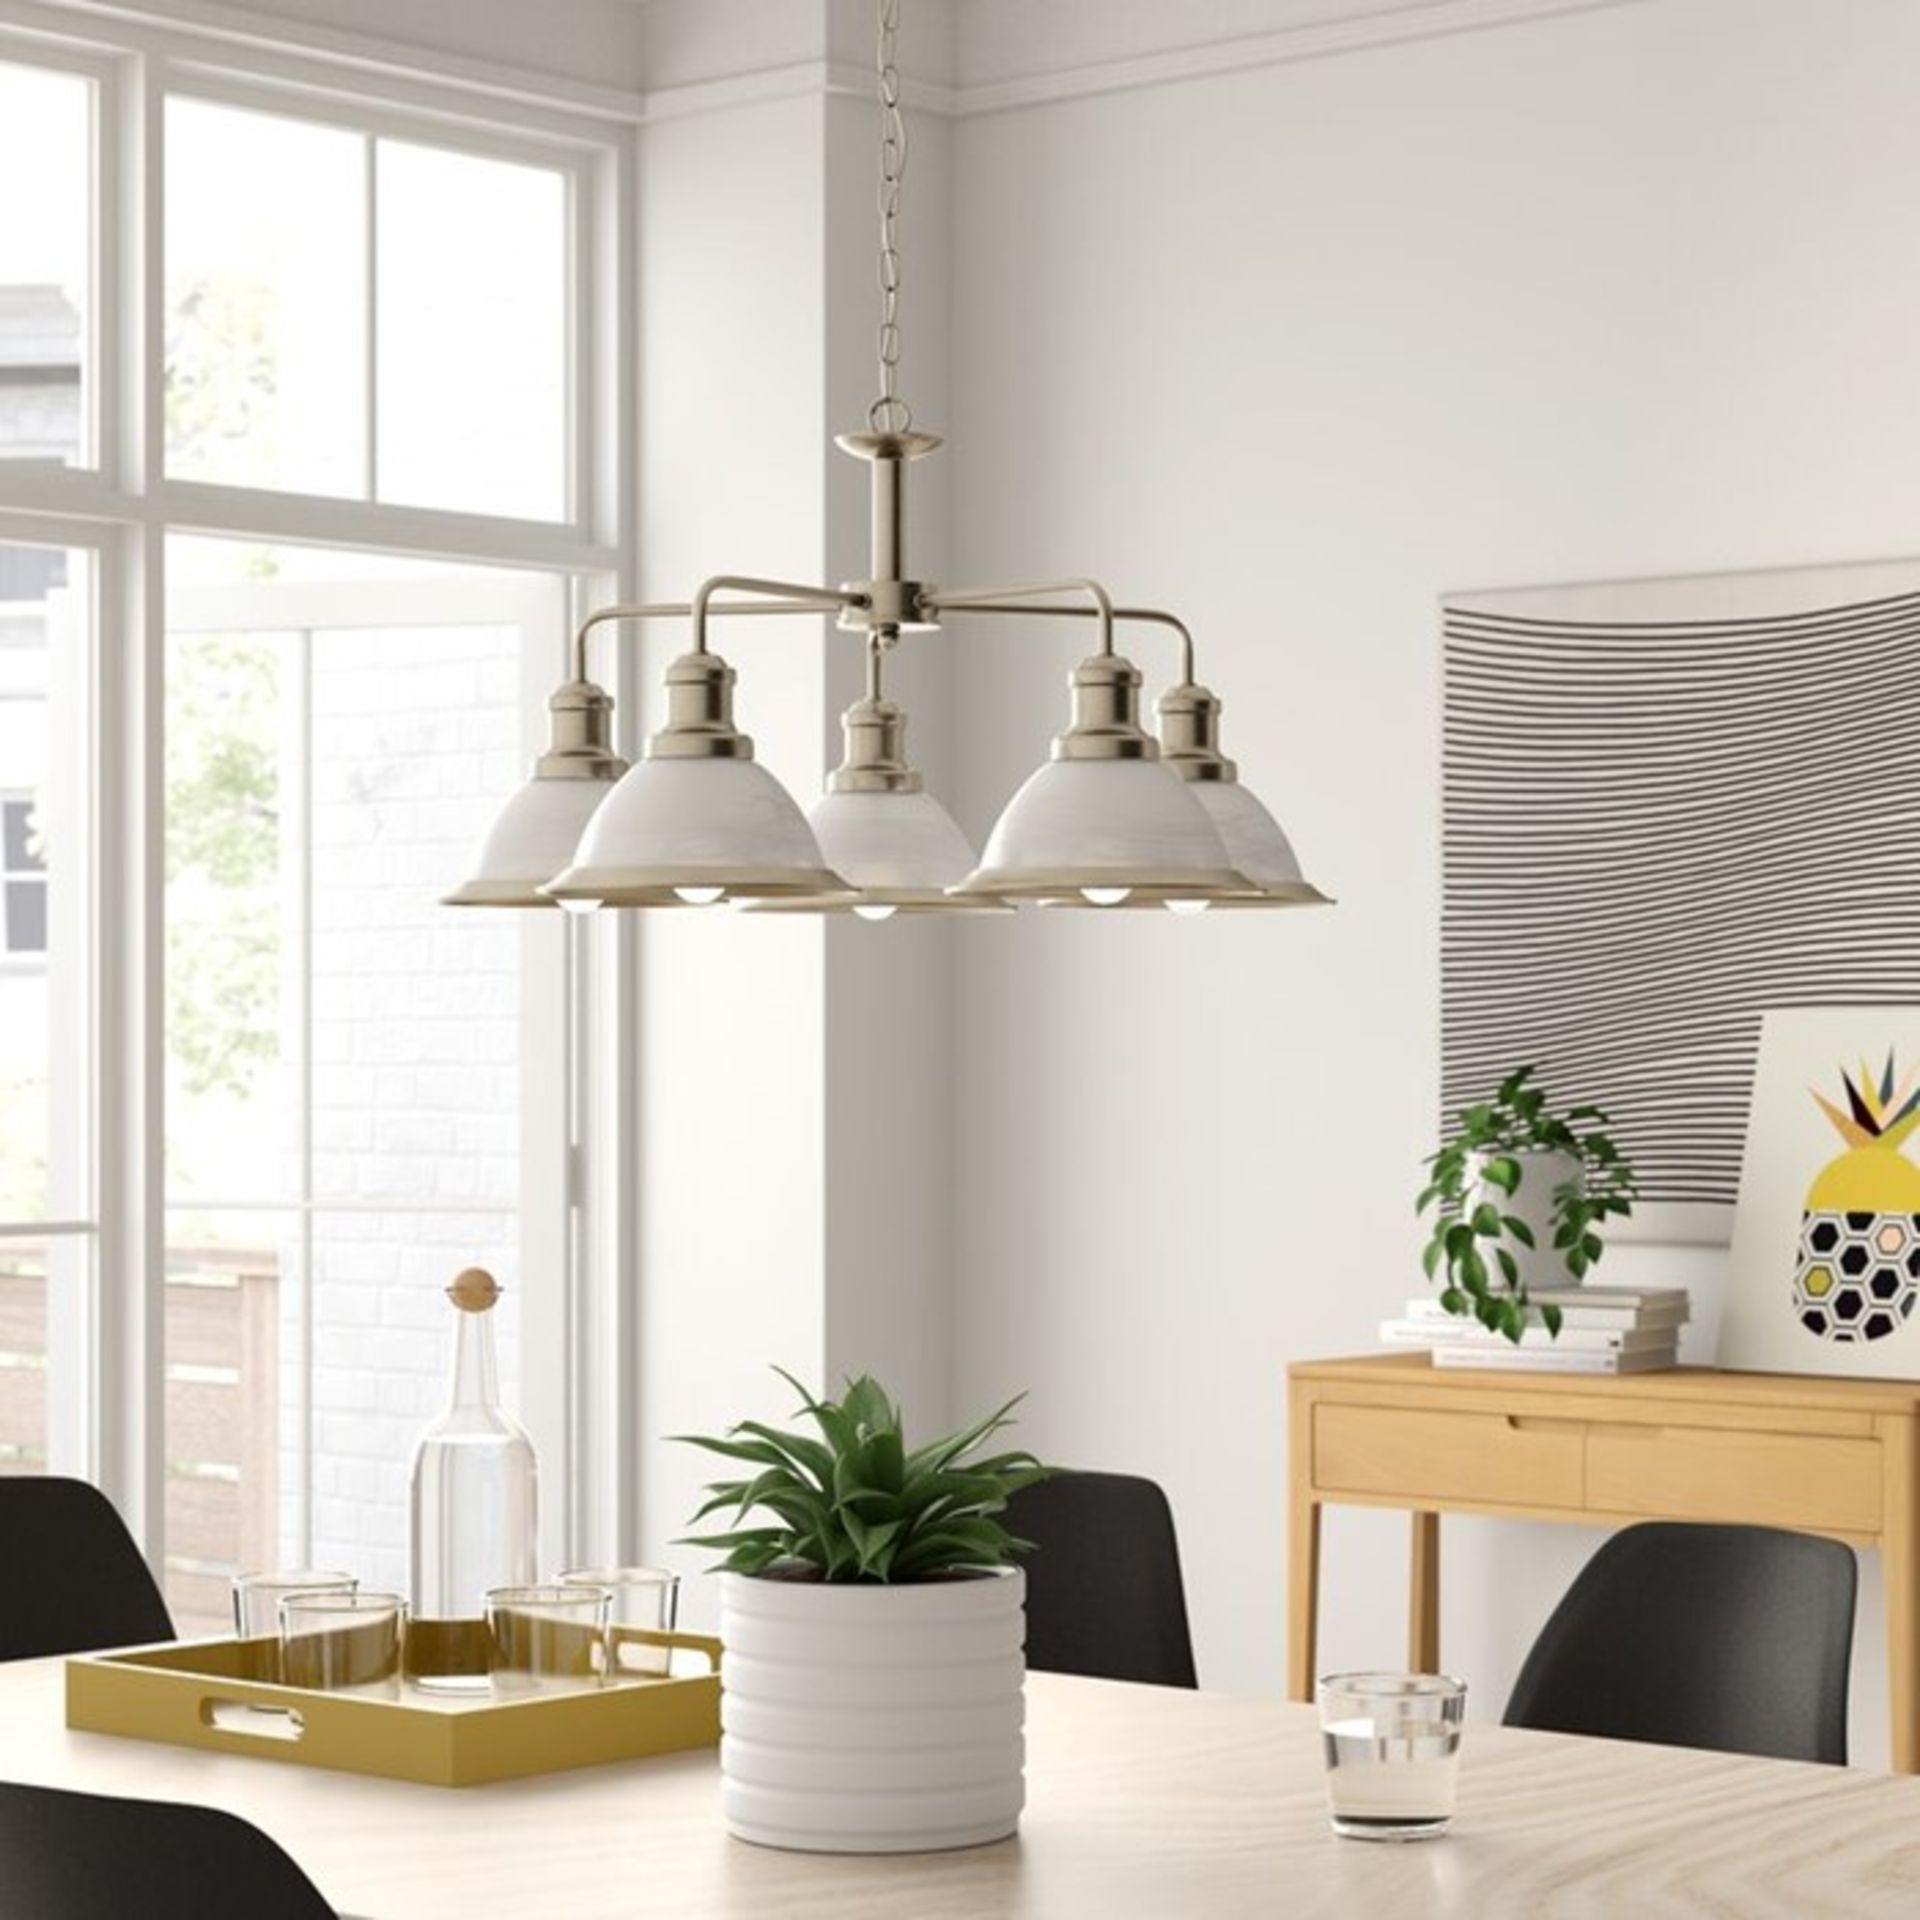 Lot 34 - Ophelia & Co.,Almont 3-Light Shaded Chandelier SLIVER - RRP £69.99 (SRL4862 - 15767/11) 5B